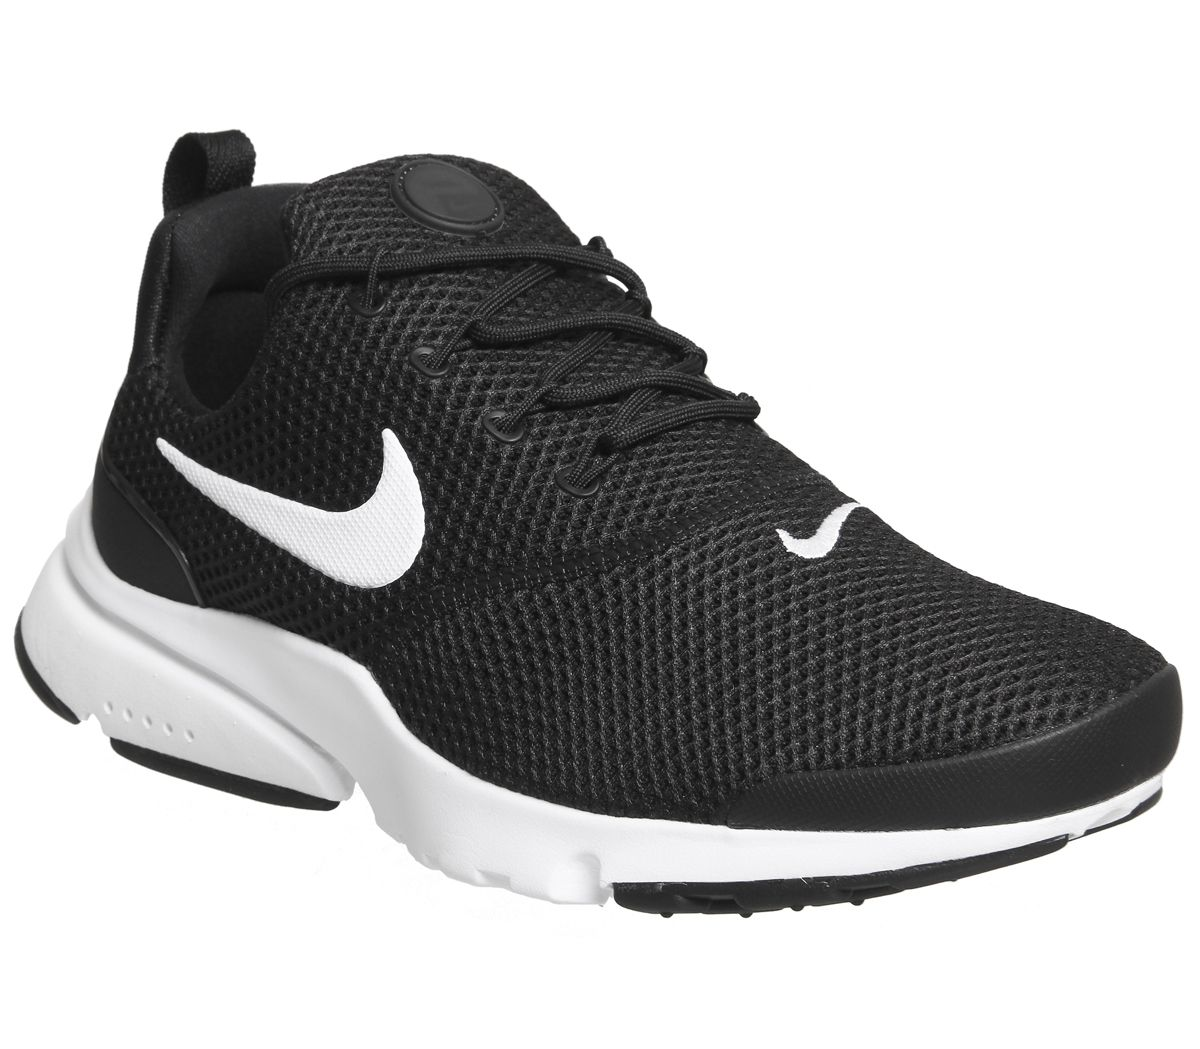 154681227a1af Nike Presto Fly Trainers Black White Black - Hers trainers